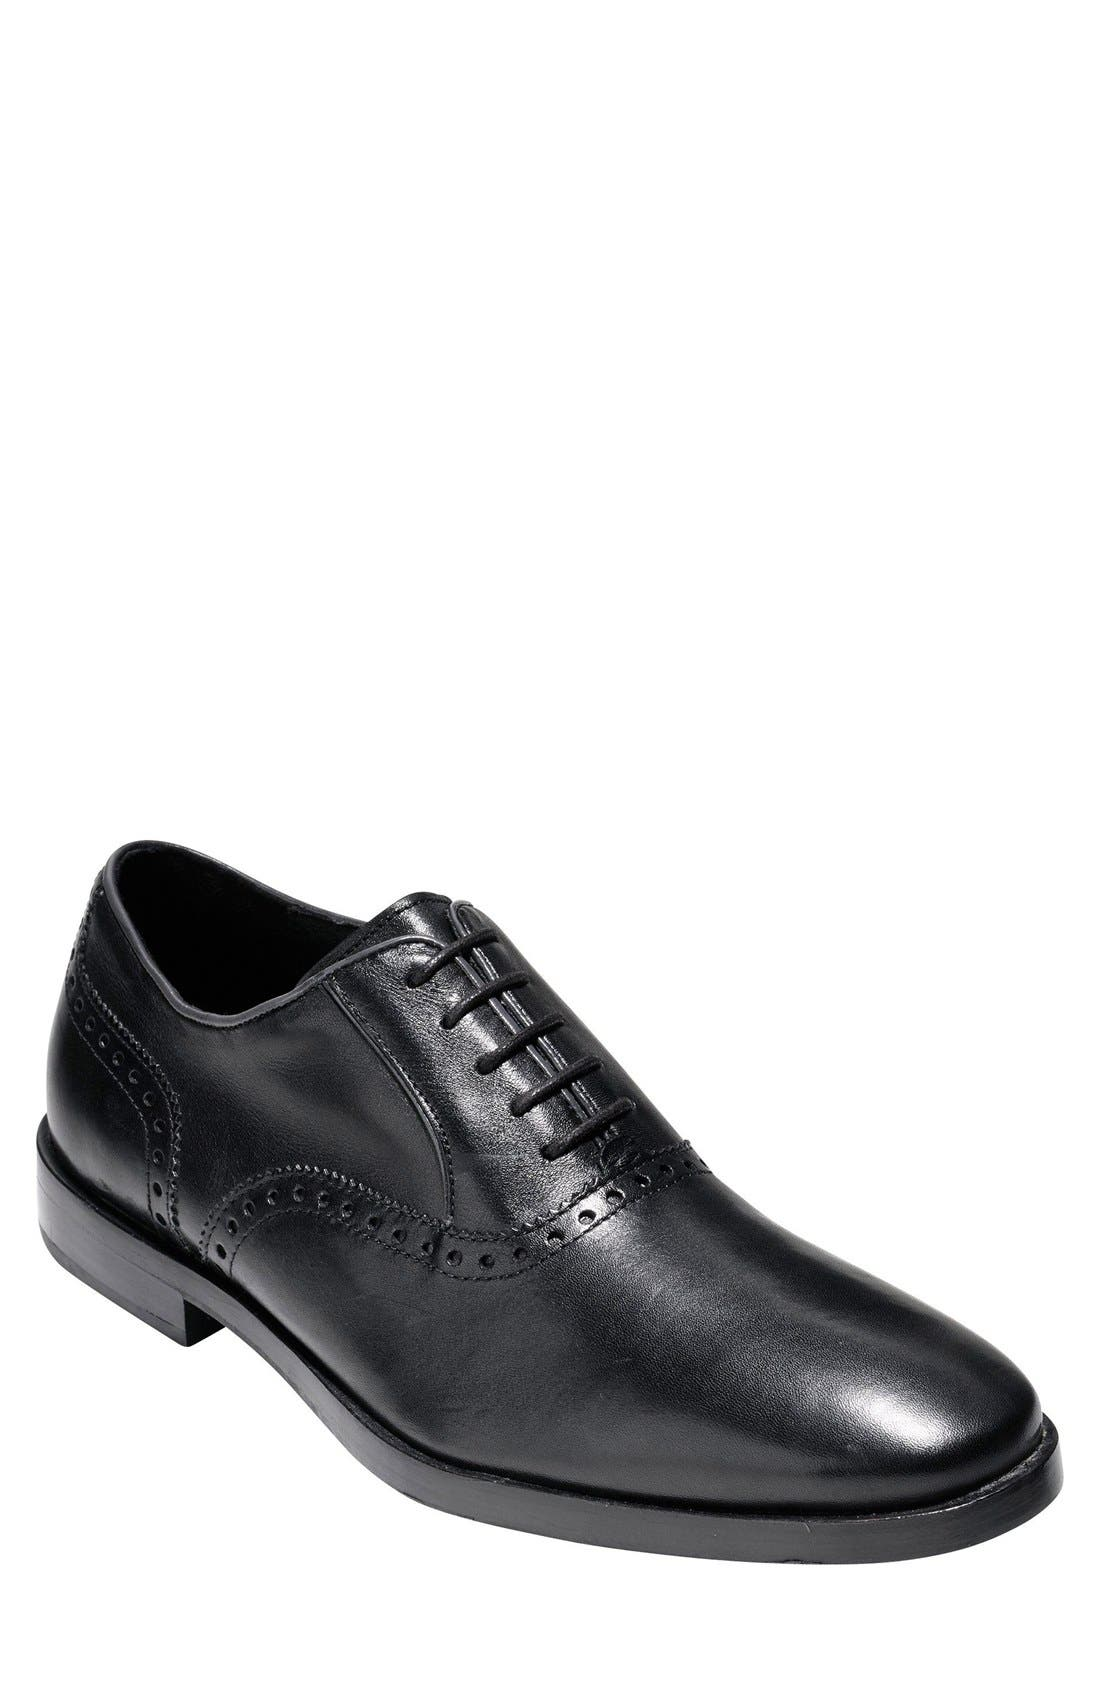 Alternate Image 1 Selected - Cole Haan 'Hamilton Grand' Plain Toe Oxford (Men)